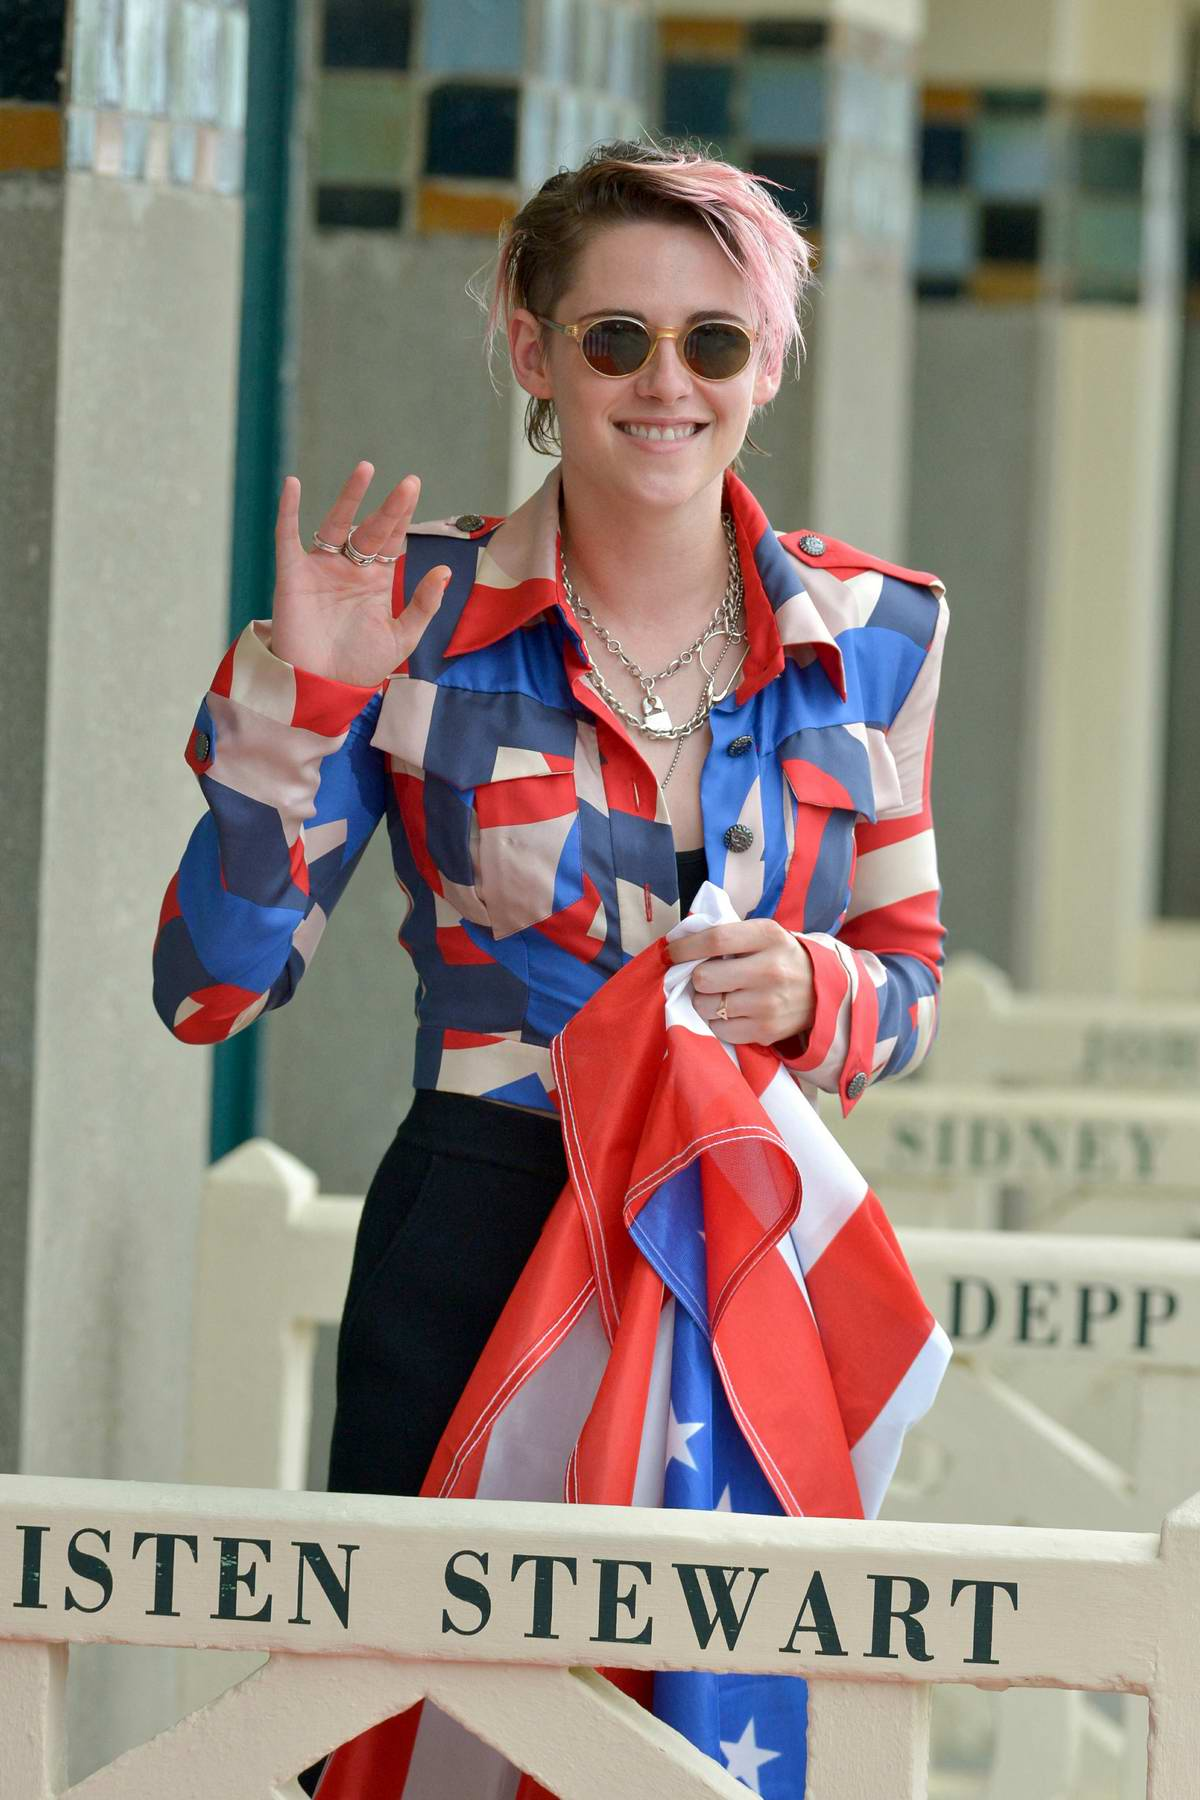 Kristen Stewart attends a photocall in her honor during the 45th Deauville American Film Festival in Deauville, France